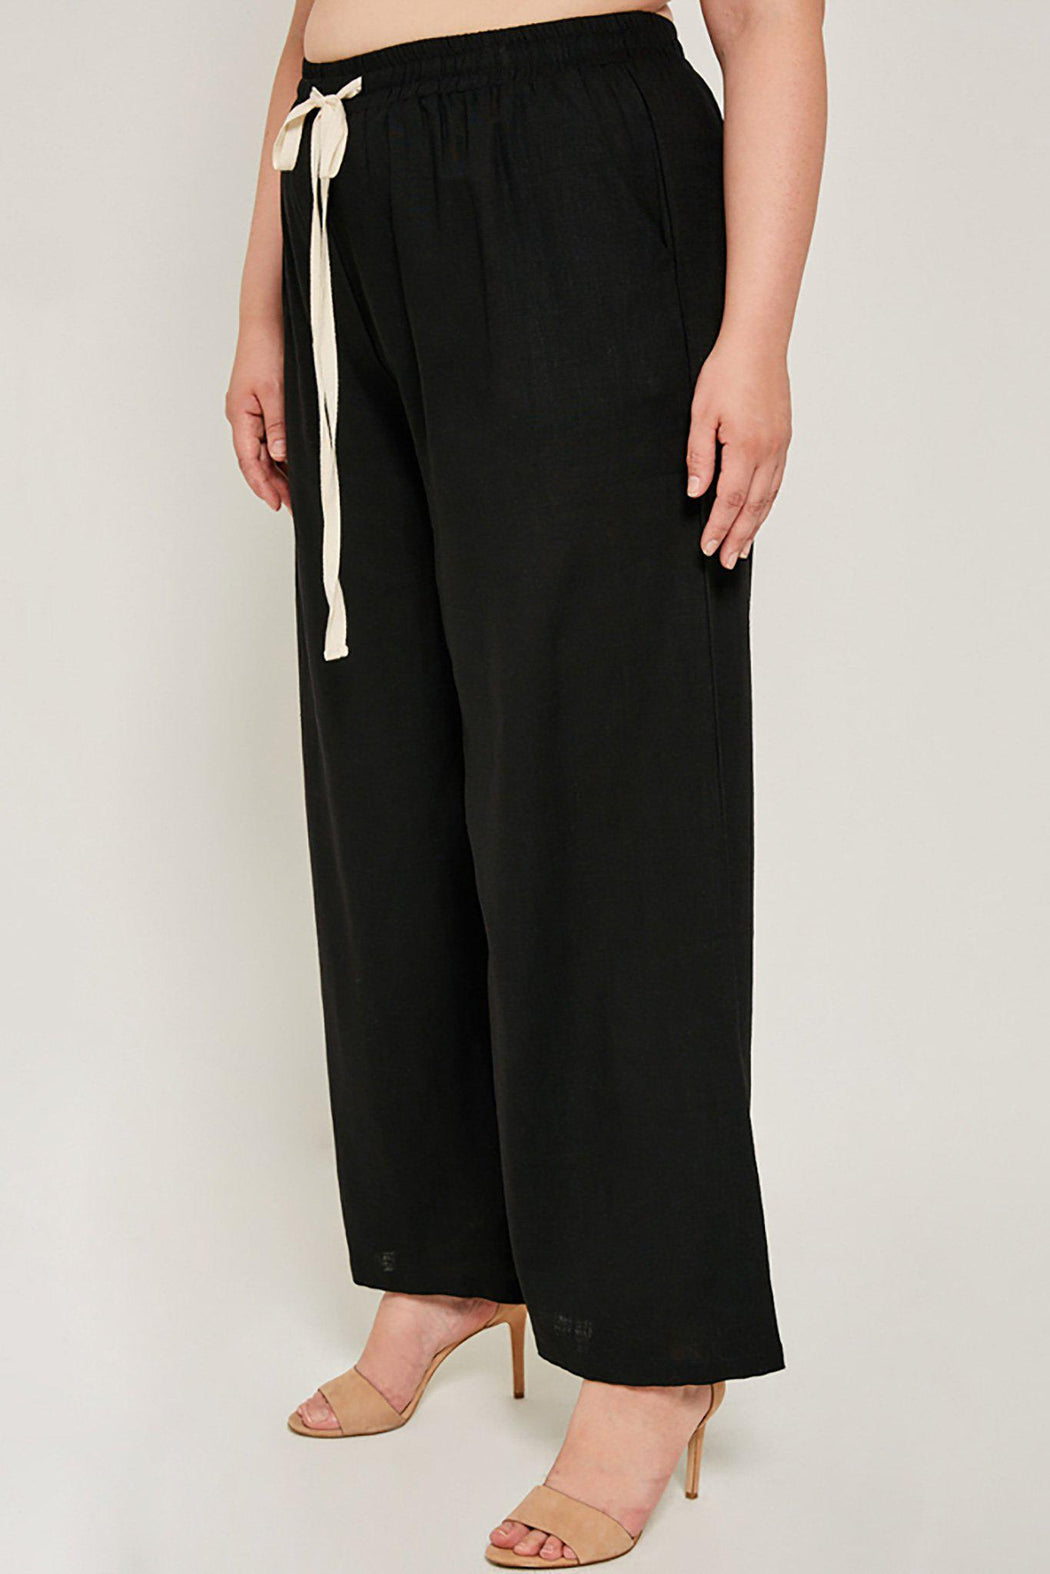 Plus-size wide leg black Madison pant close-up side view on model